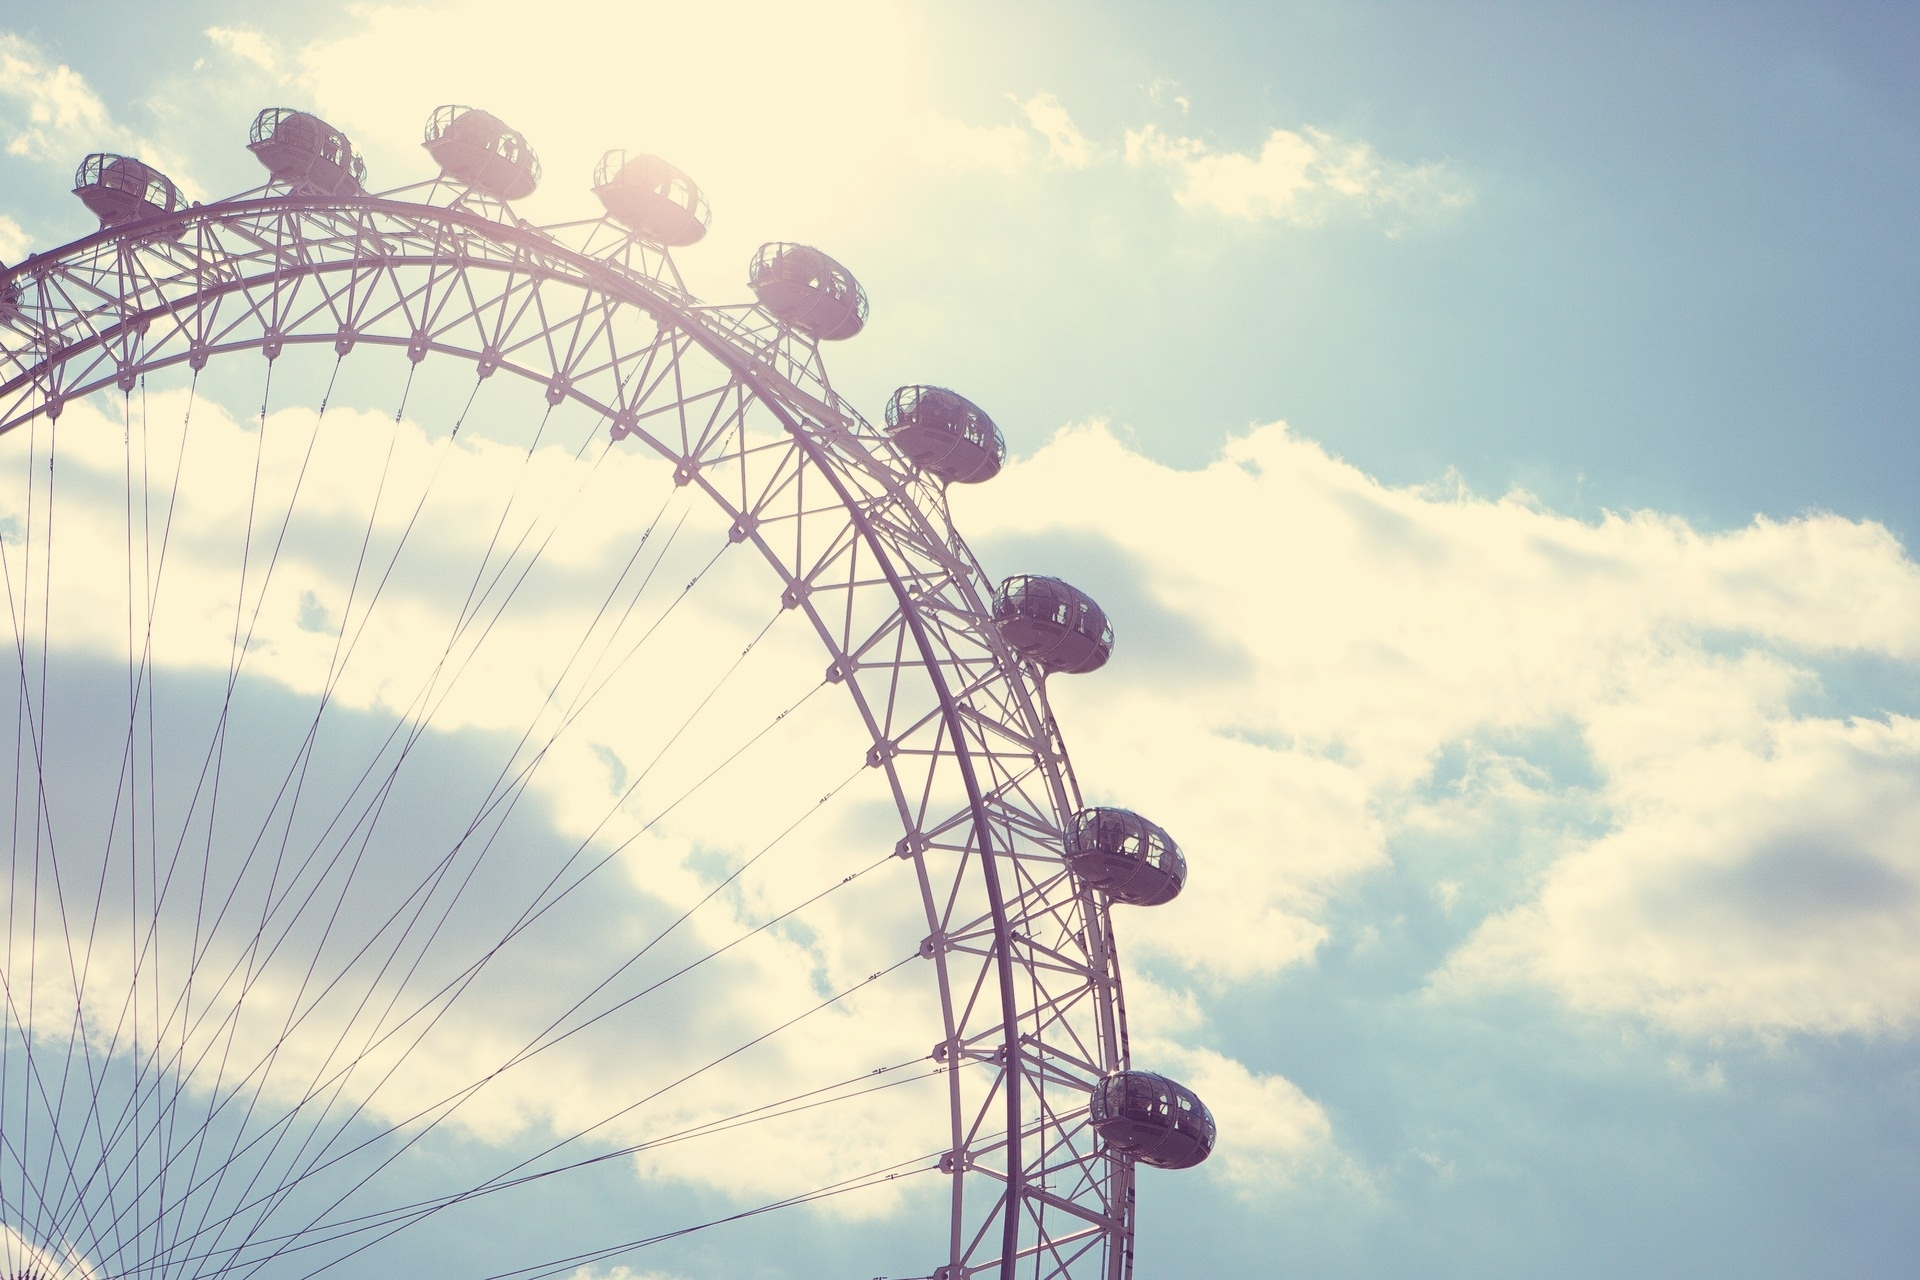 vintage-amusement-park-photography-beauty-hd-wallpaper-blue-sky-photography